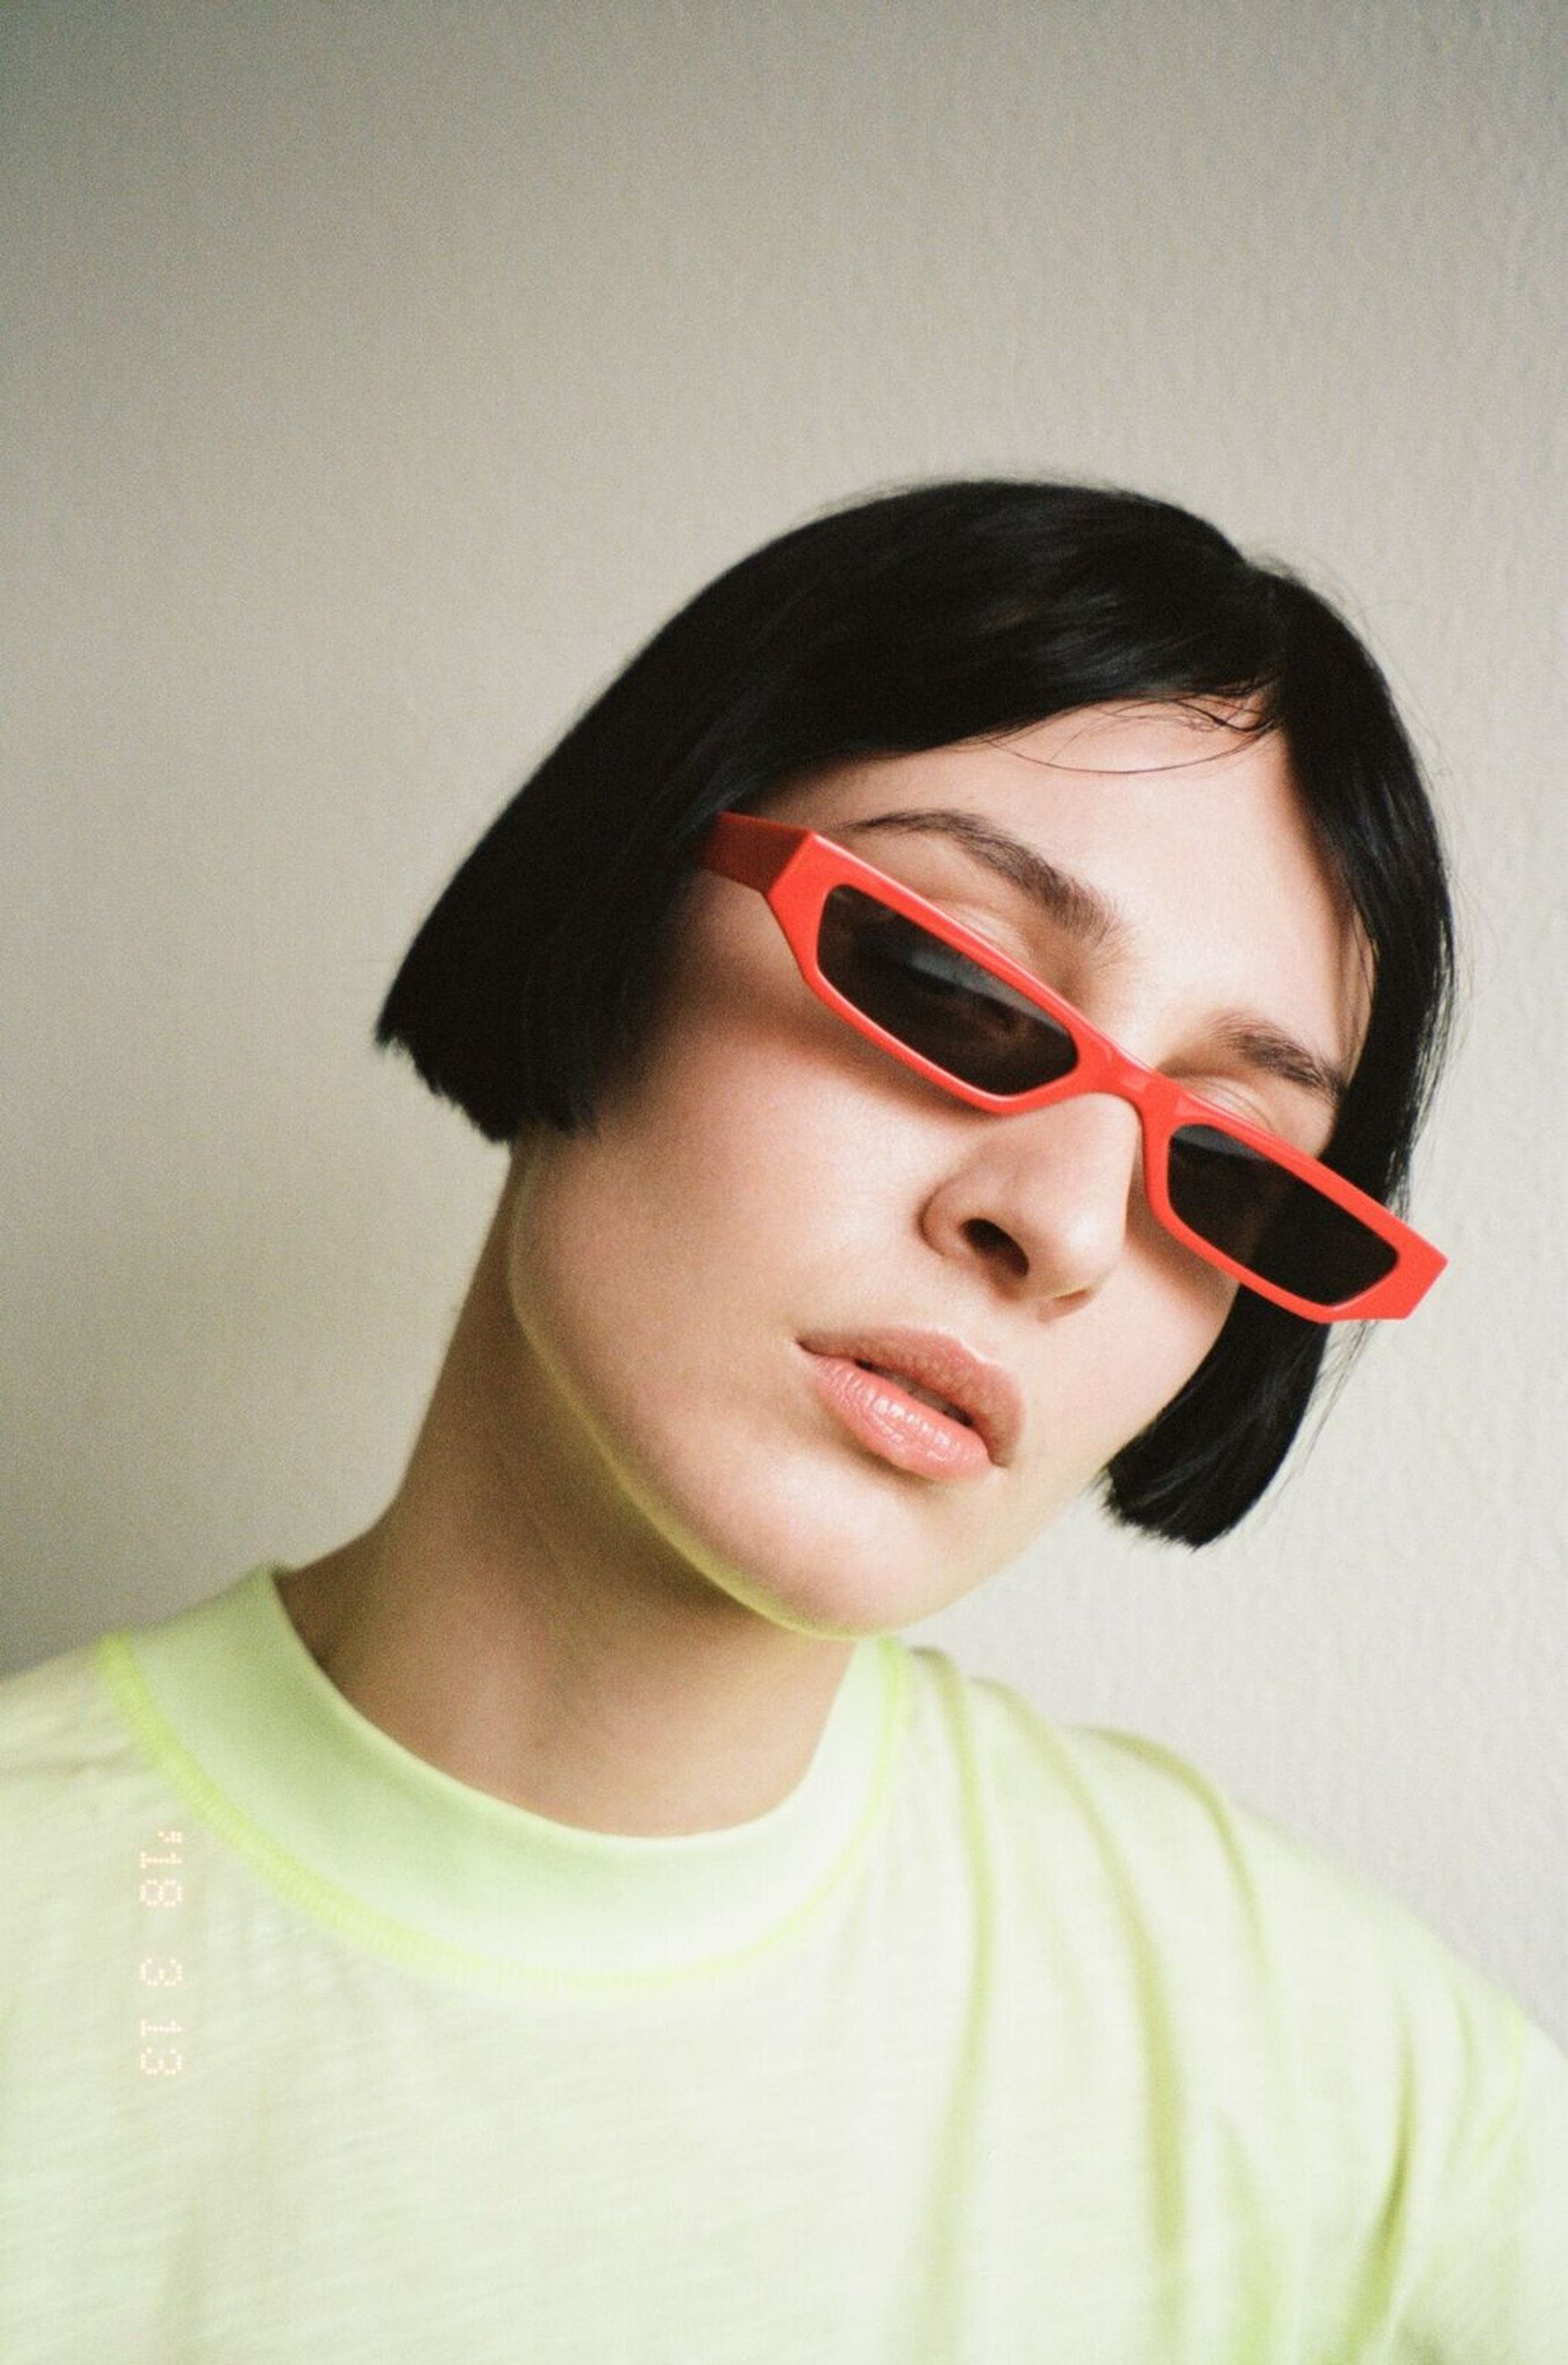 Ace   Tate Futuristic Sunglasses in Pris and Neo Yellow Black Red Sci-Fi  Movie Characters cdbc20a936